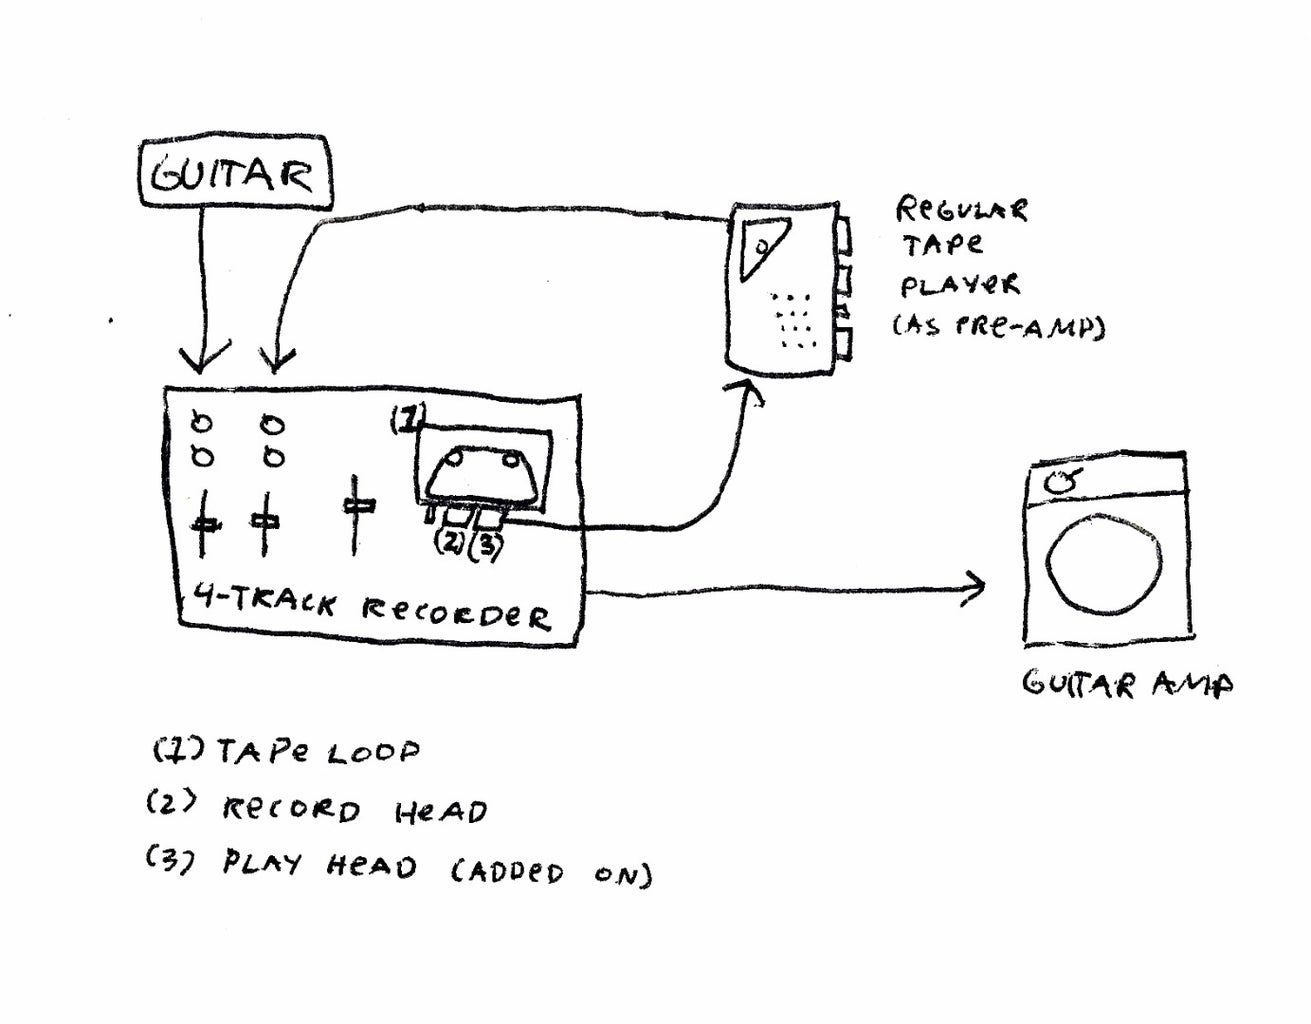 Connect, Test, and Troubleshoot the Tape Echo